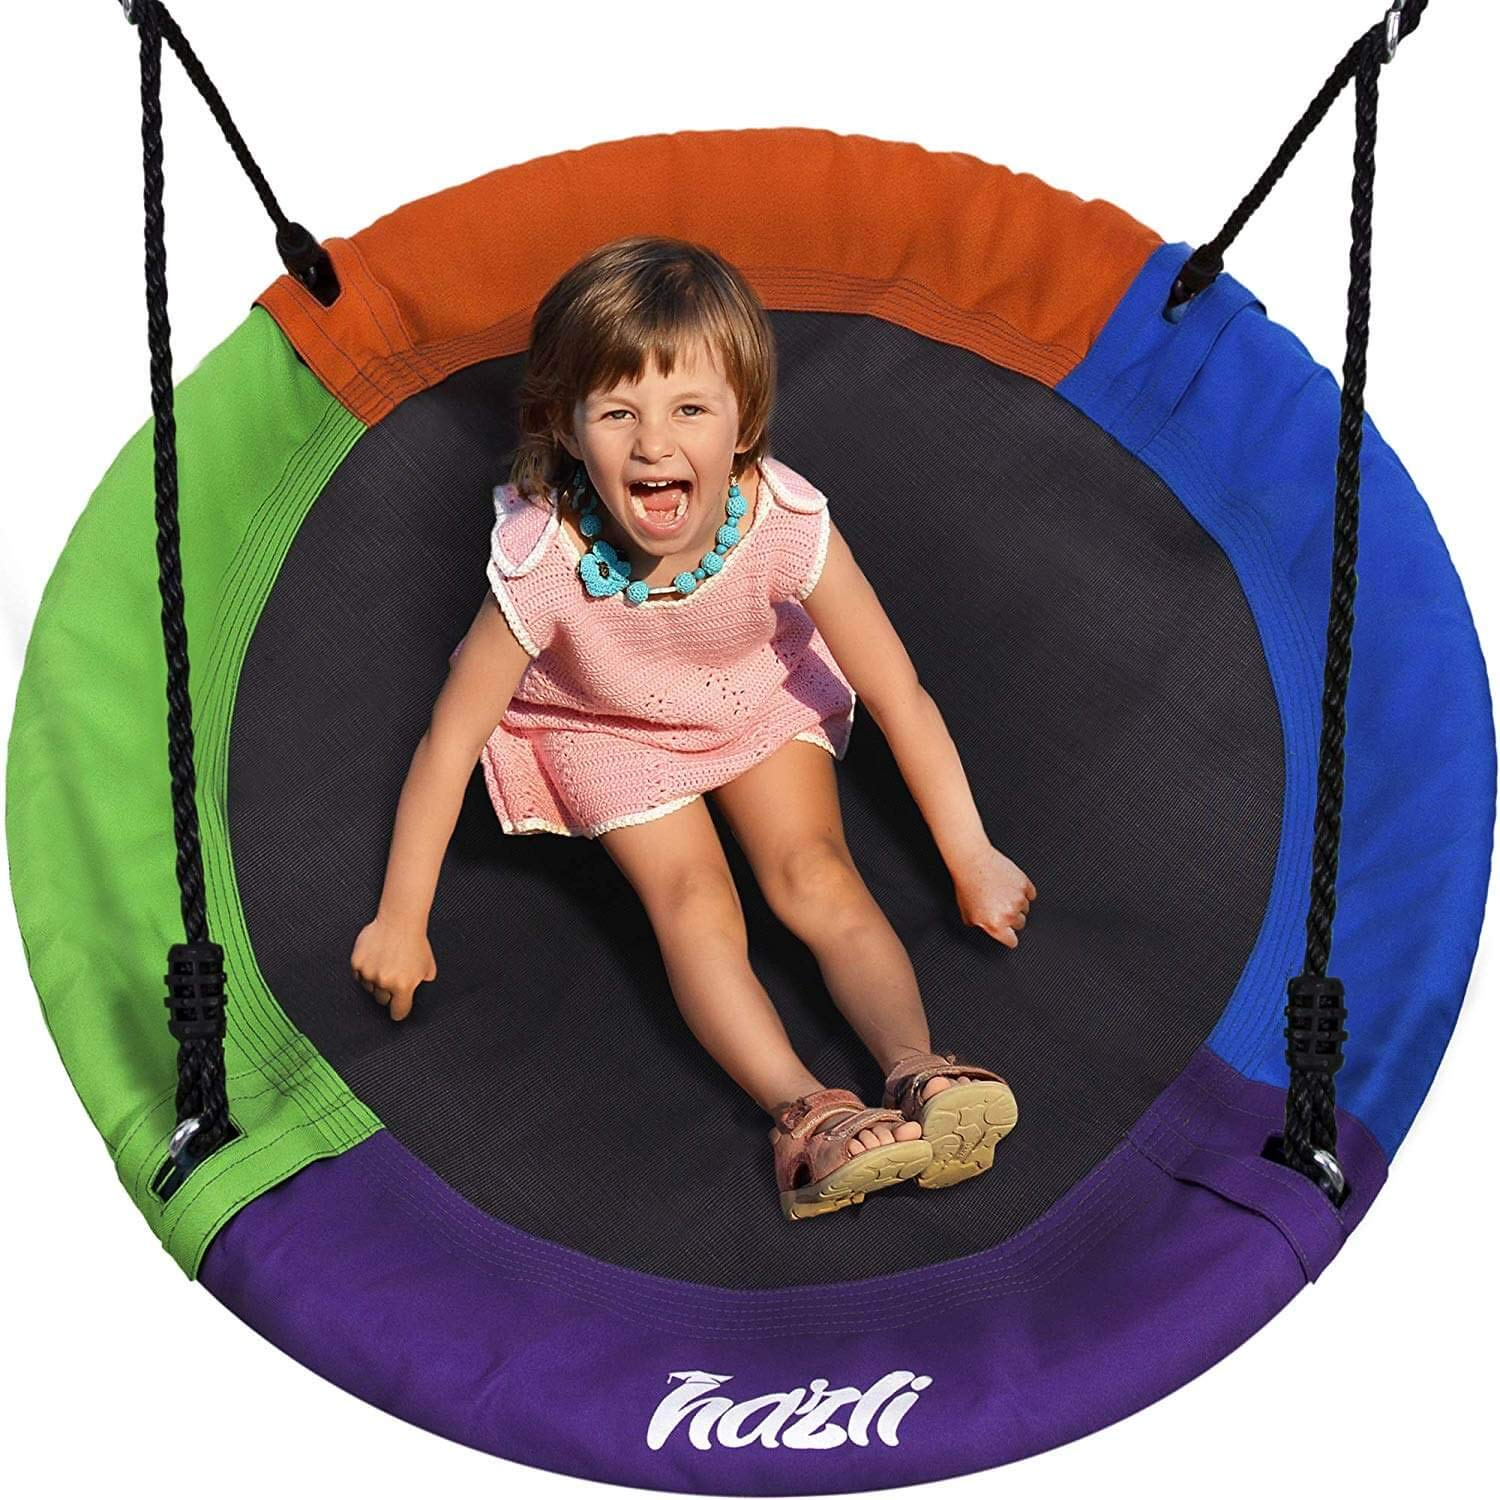 Outdoor Round Tree Swing for Kids - 40'' Saucer Tree Swing for Kids-Large Tree Swings for Children - 400 lbs Tree Swings for Outside with Hanging Kit by Hazli (Image #8)